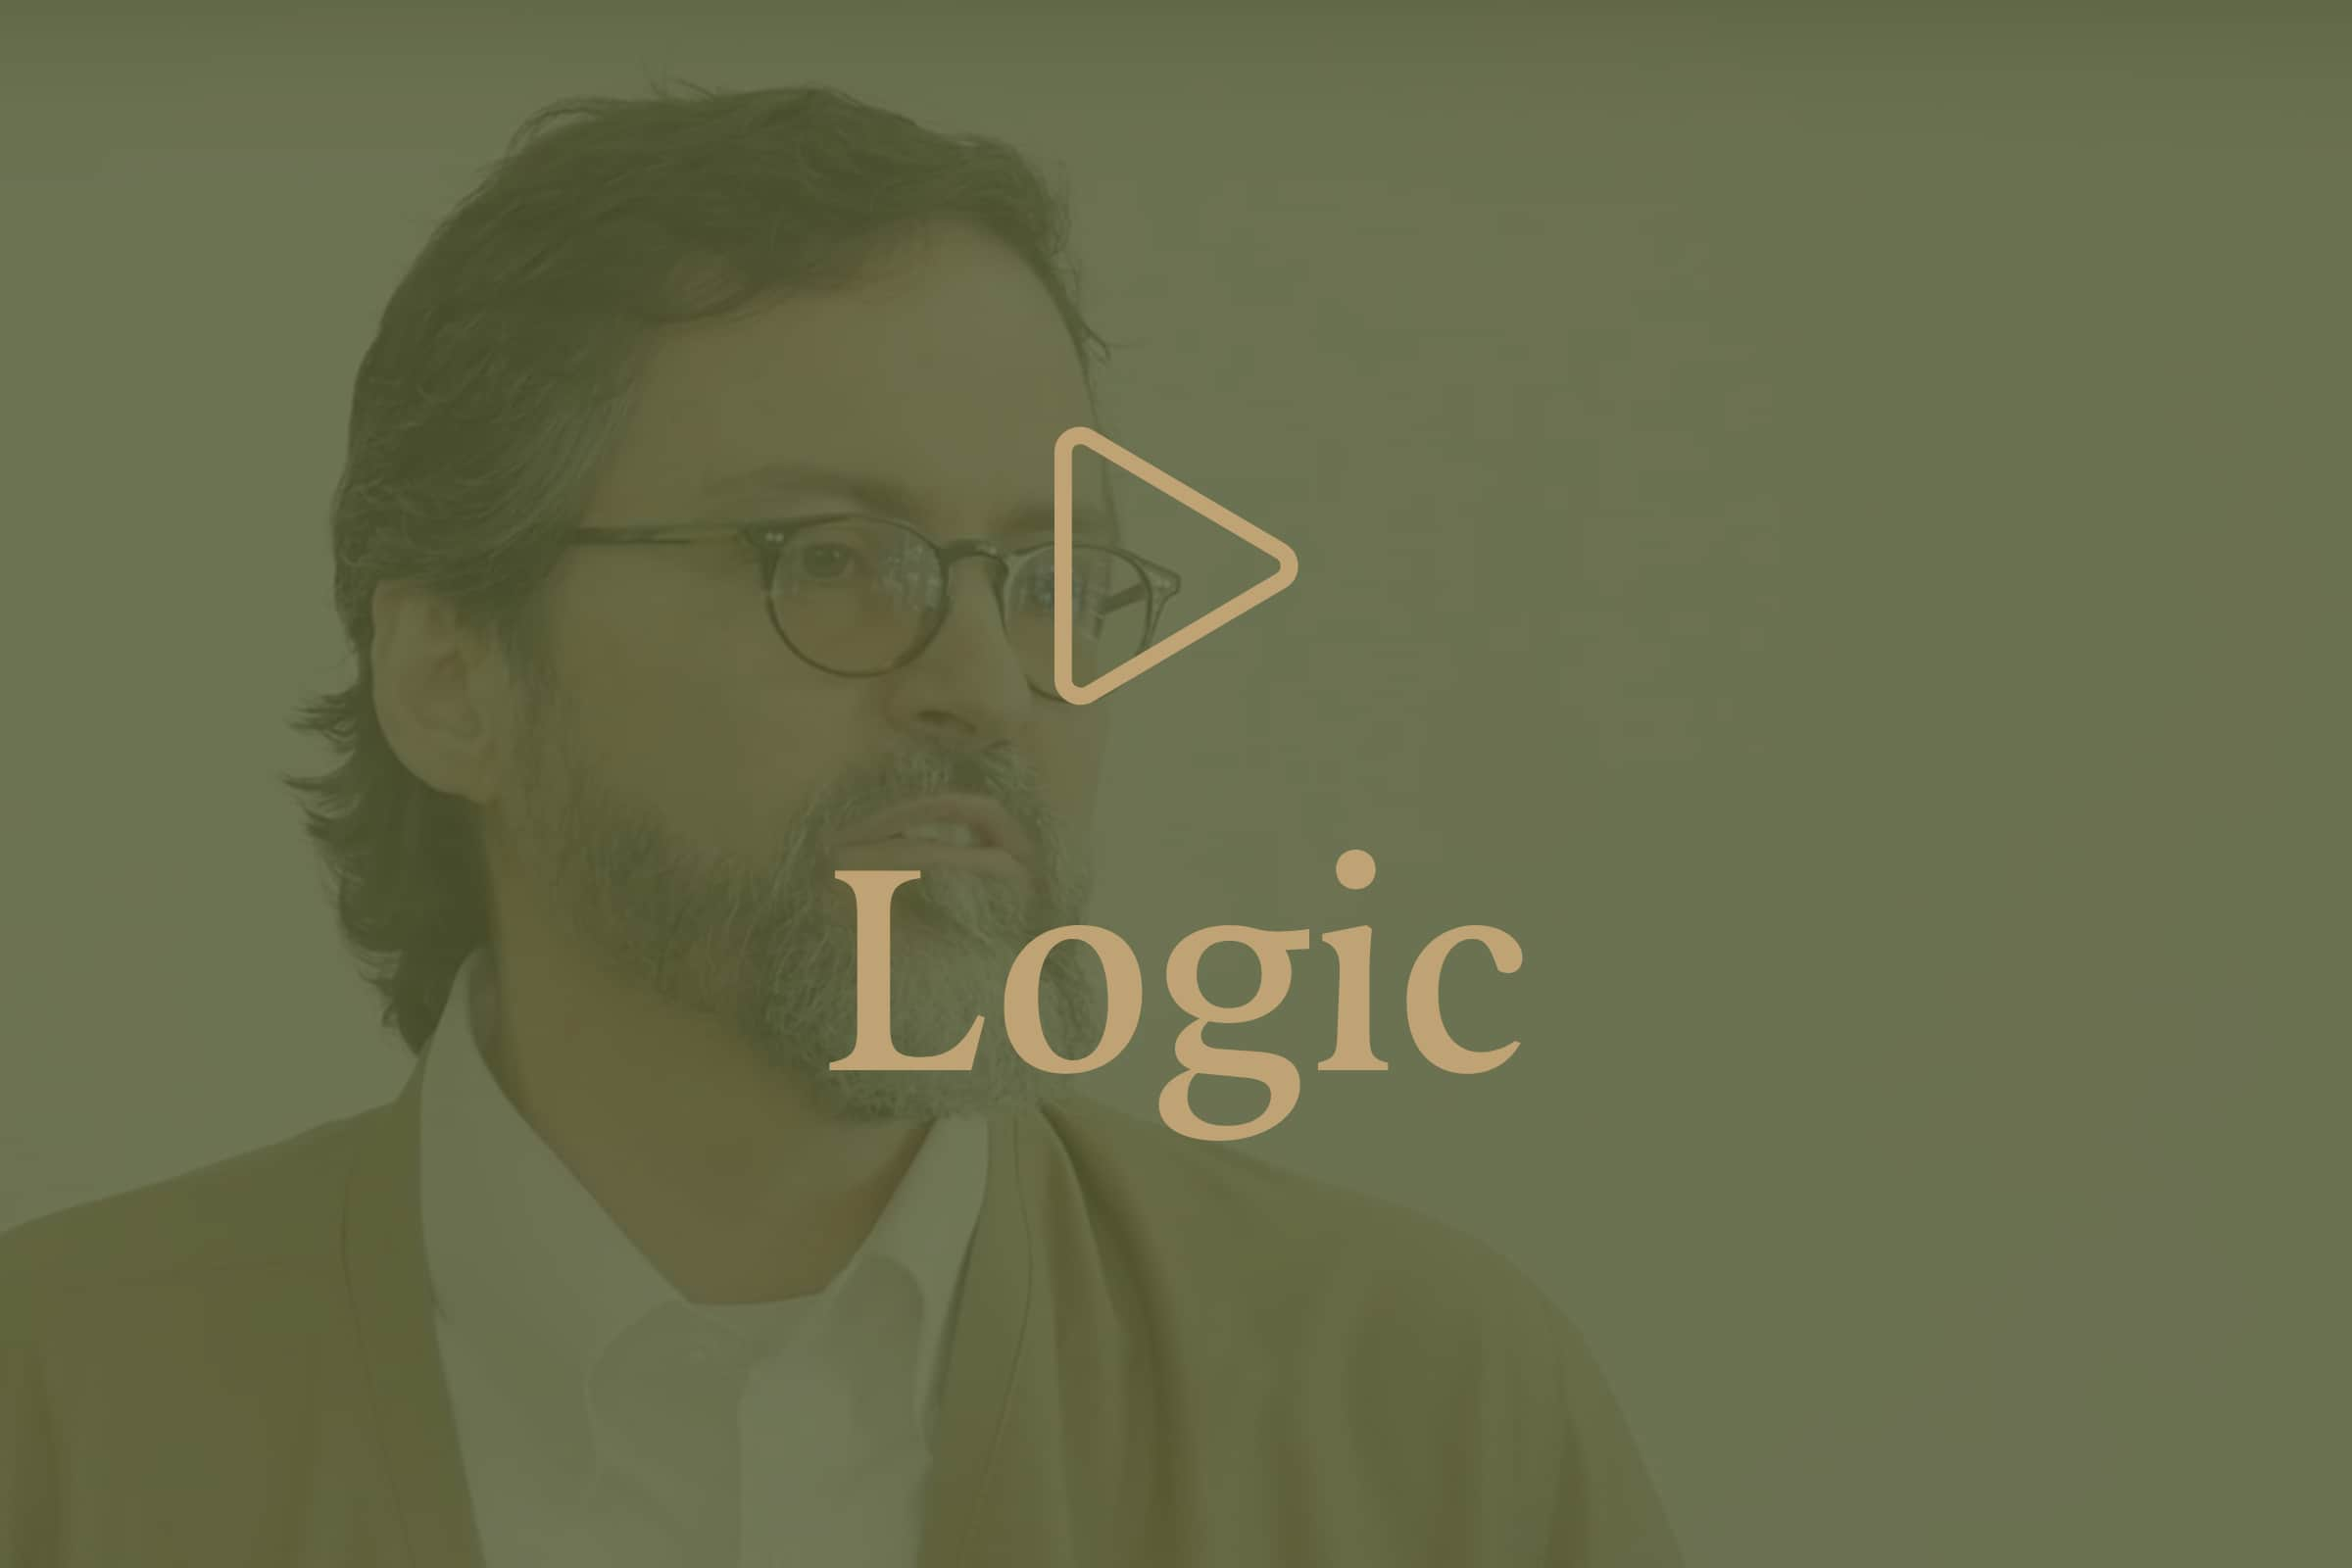 Hamza Yusuf image with an overlay of play icon with Logic title.